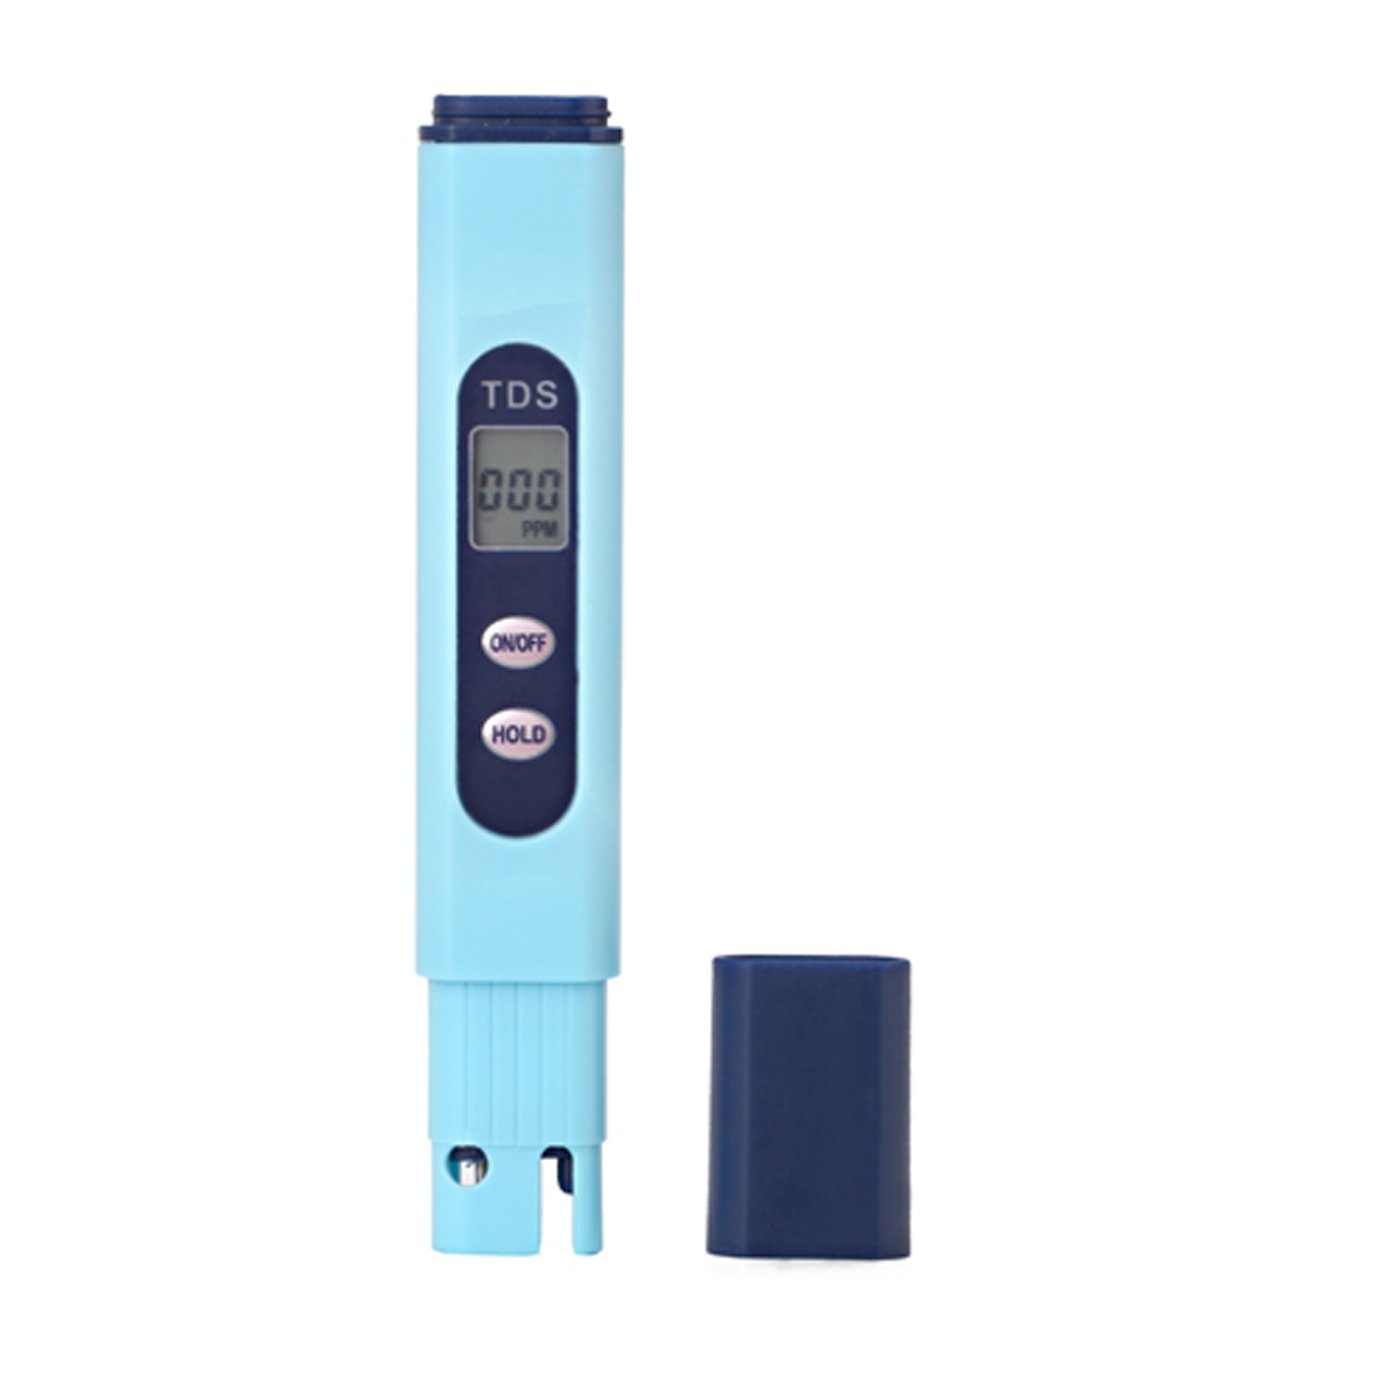 HDE Digital TDS (Total Dissolved Solids) Water Purity Quality Tester Meter ppm Pen by HDE